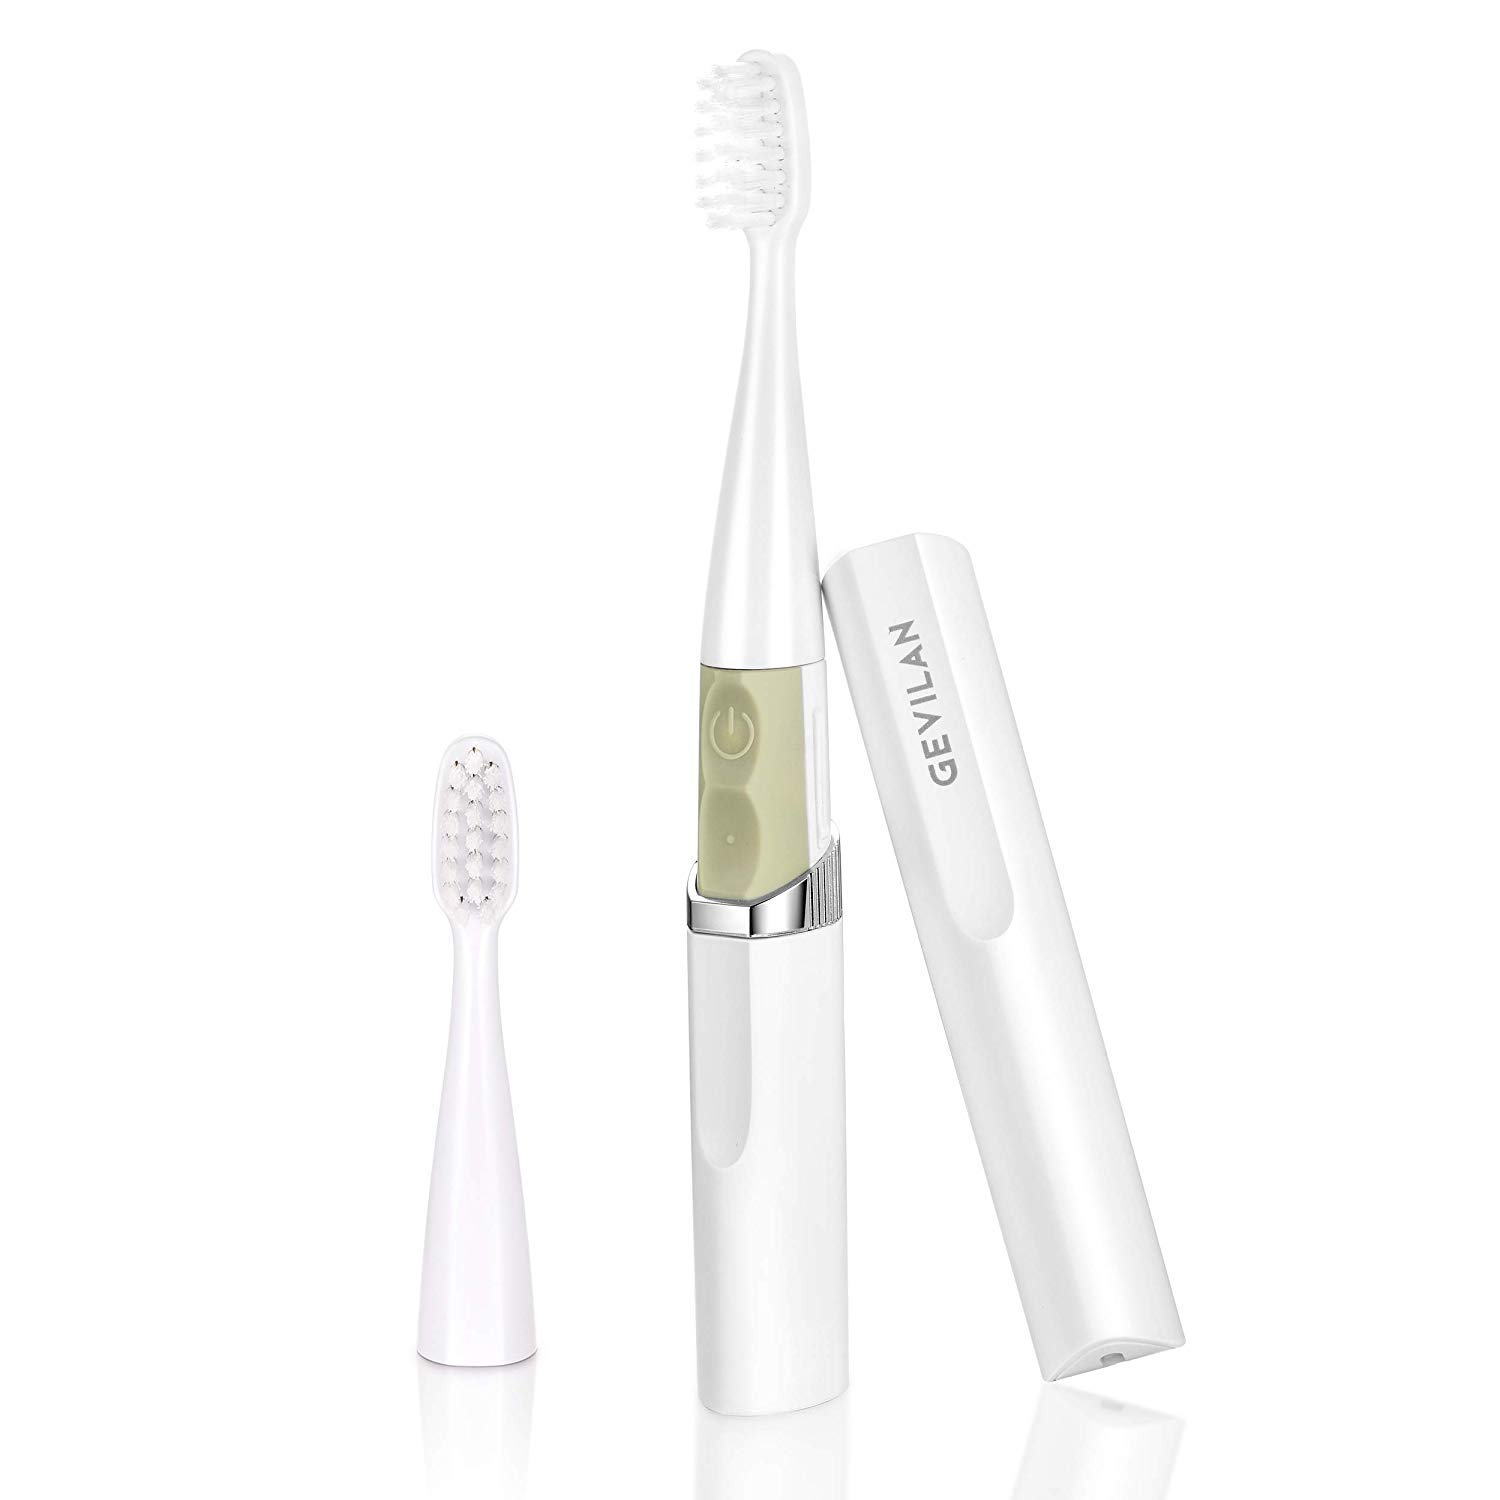 Travel Electric Toothbrush by Gevilan with 2 Modes Battery Powered, Waterproof and Portable Lipstick Mini Design for Daily Oral Beauty Care, Trip(White) by GEVILAN